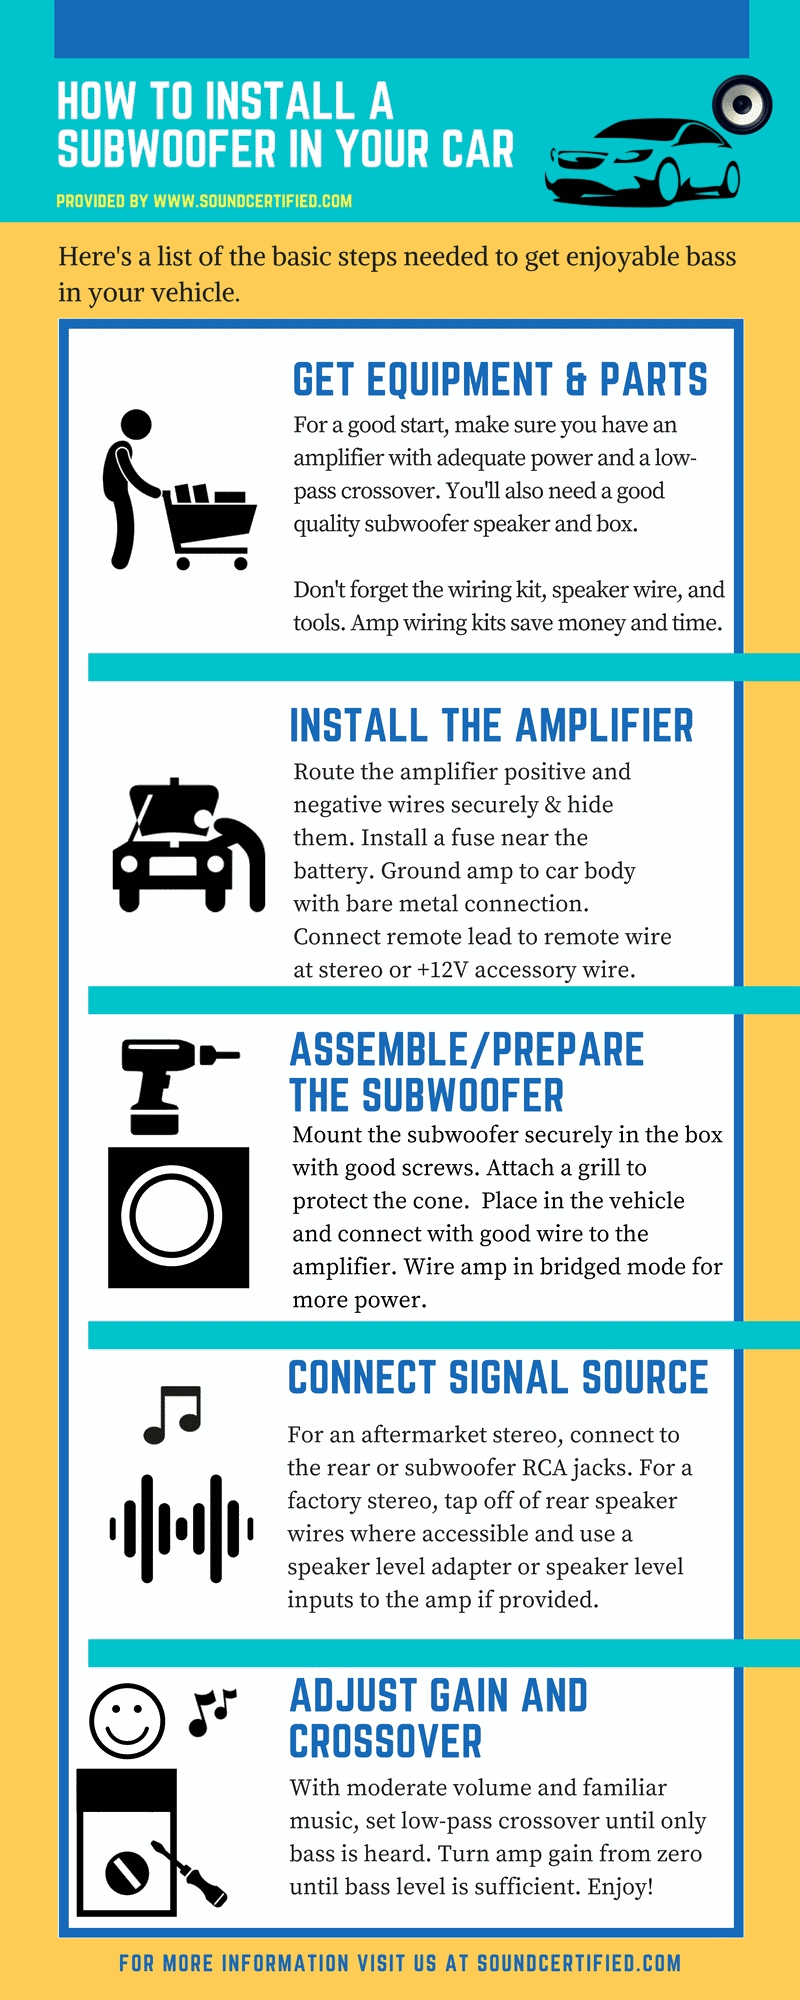 How To Install A Subwoofer And Subwoofer Amp In Your Car - The ...